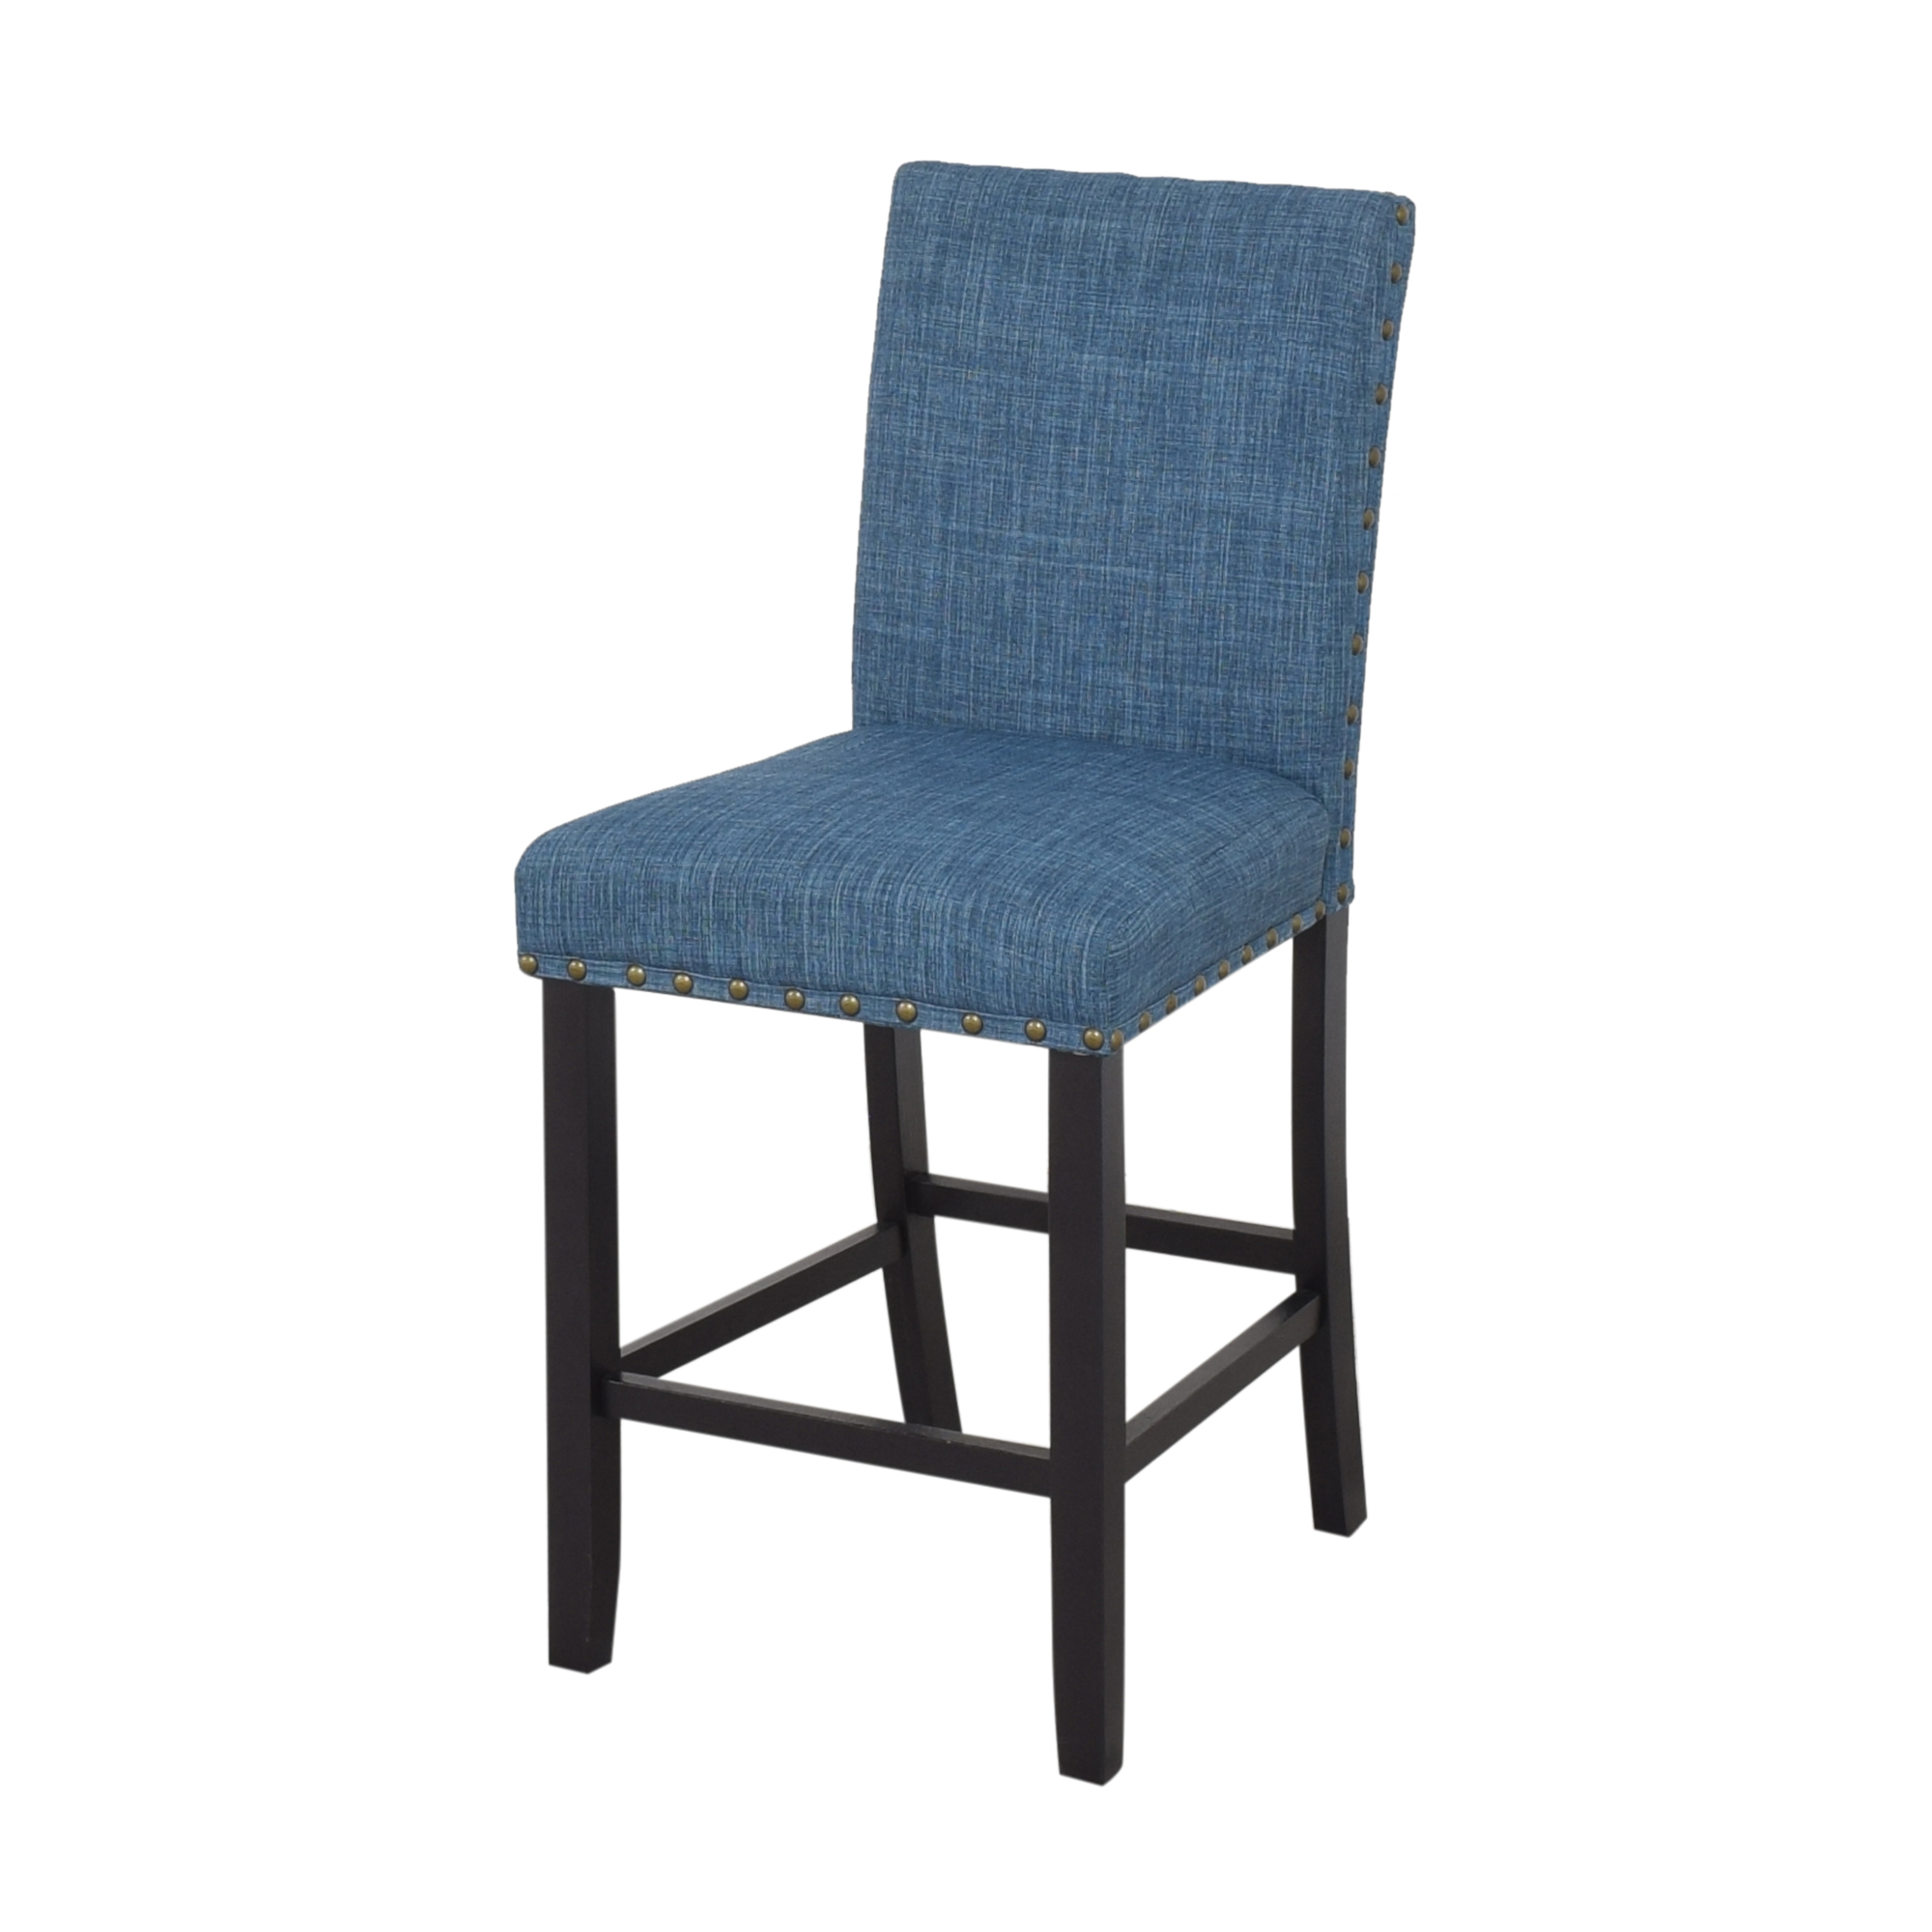 Overstock Overstock Biony Nailhead Counter Stools ct